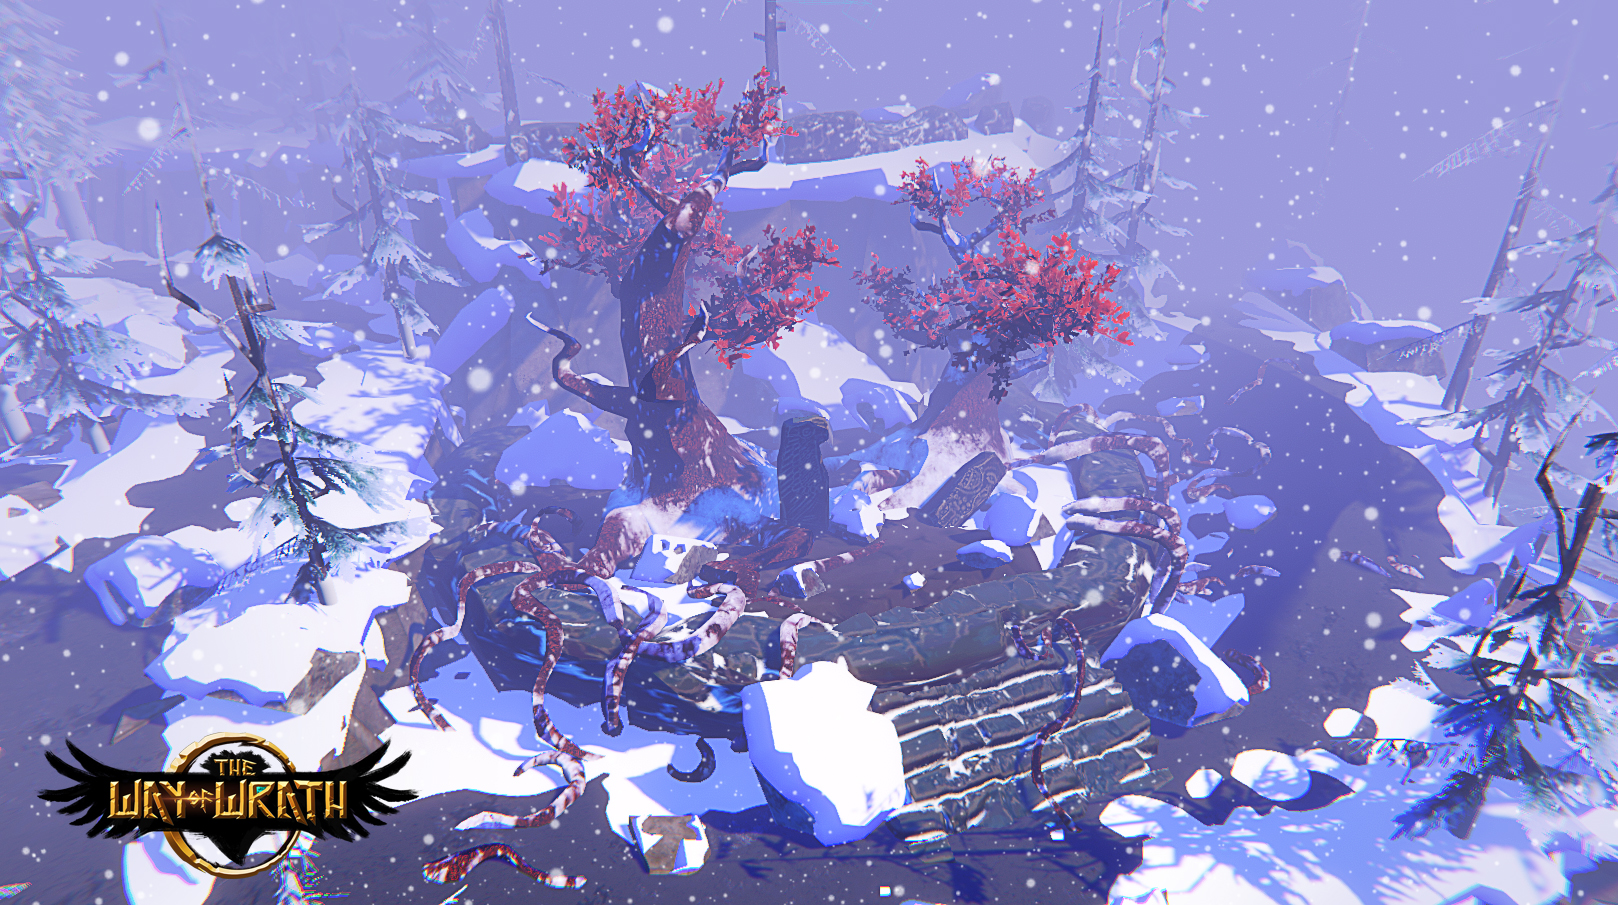 Screenshot, with game environment.